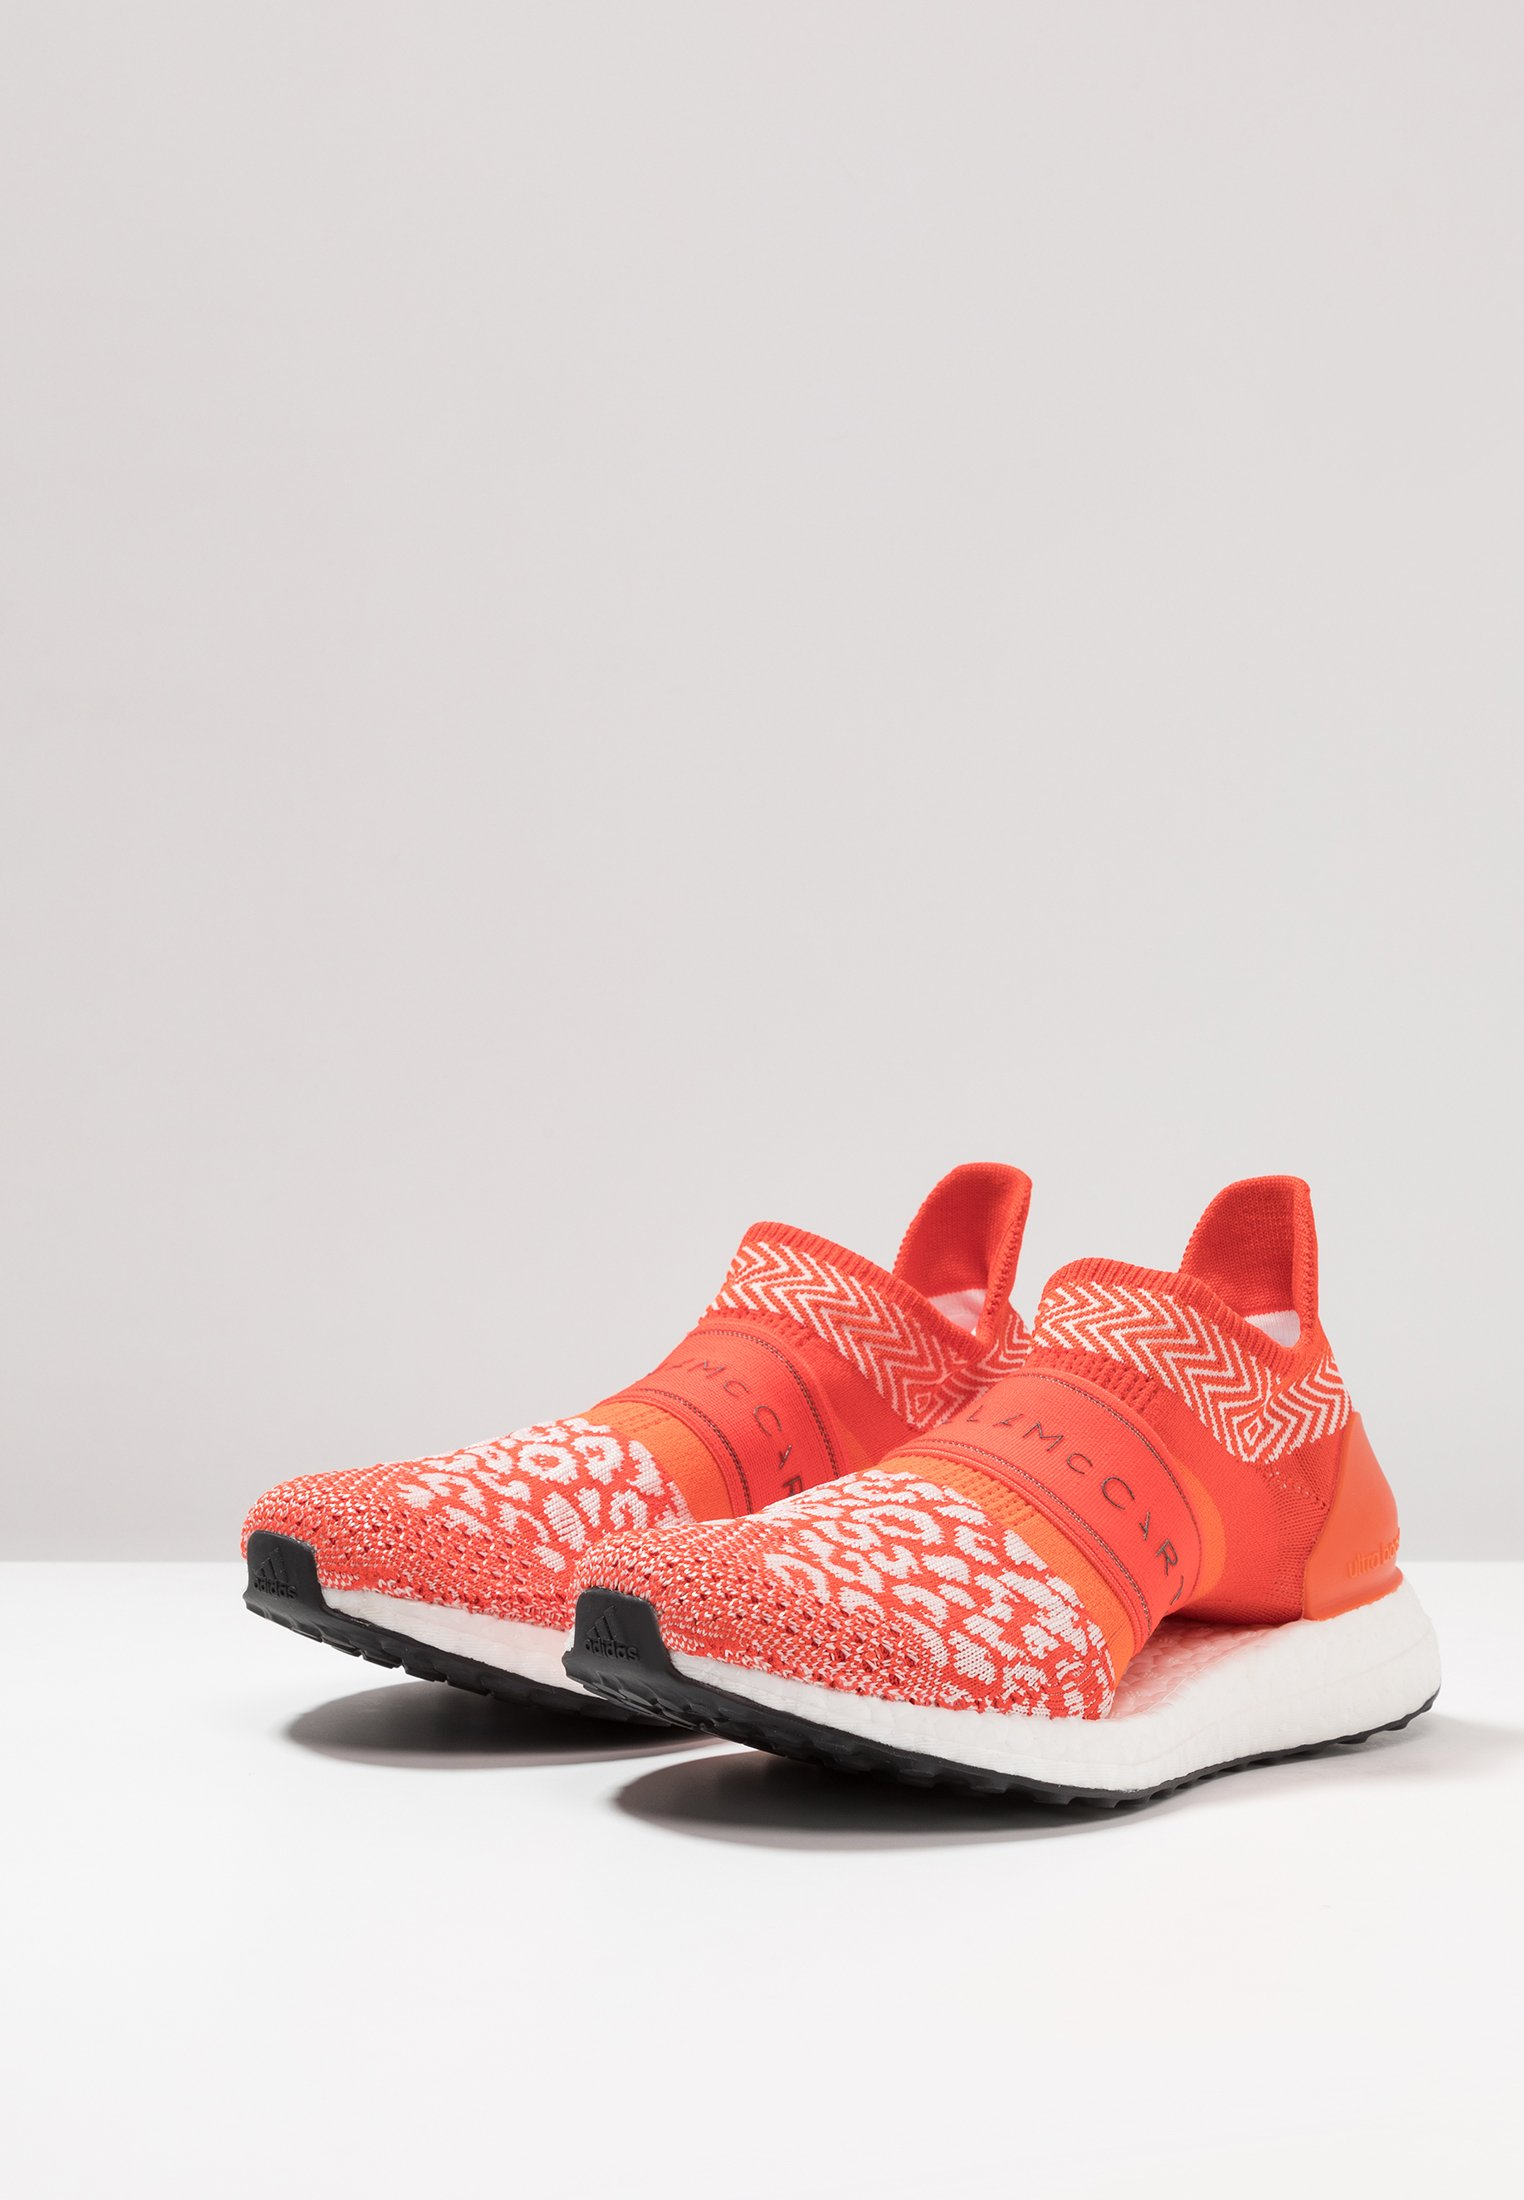 By White bold Orange Ultraboost 3 Adidas X Stella Mccartney dSChaussures Neutres De Running Core kOPXuZiwT